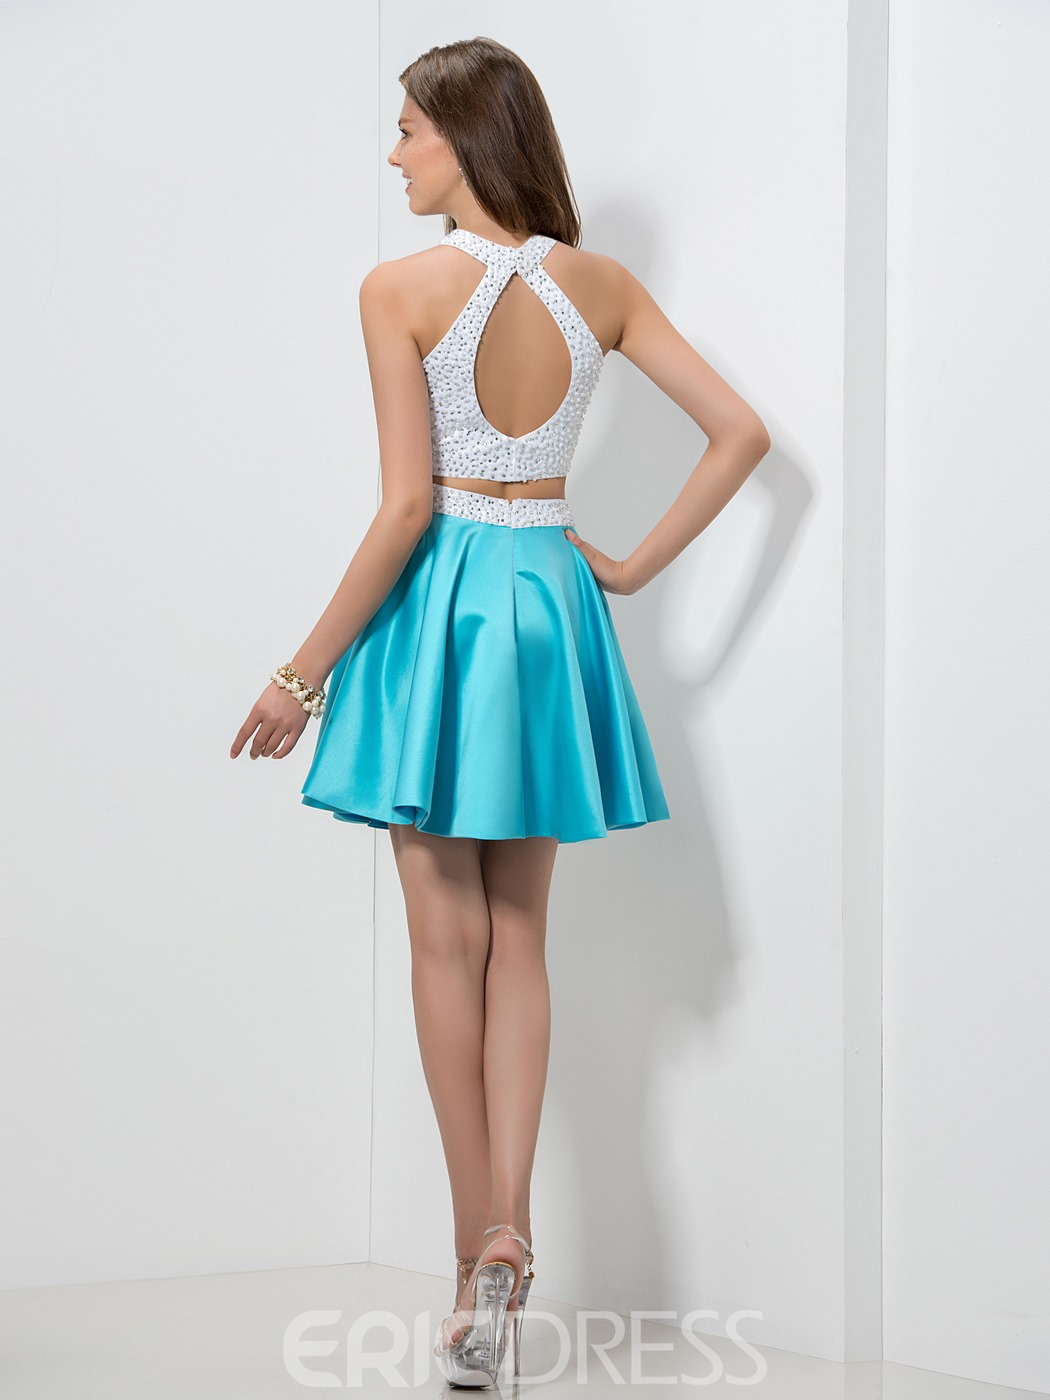 Ericdress Pearl Key Hole Back Two-Piece Homecoming Dress